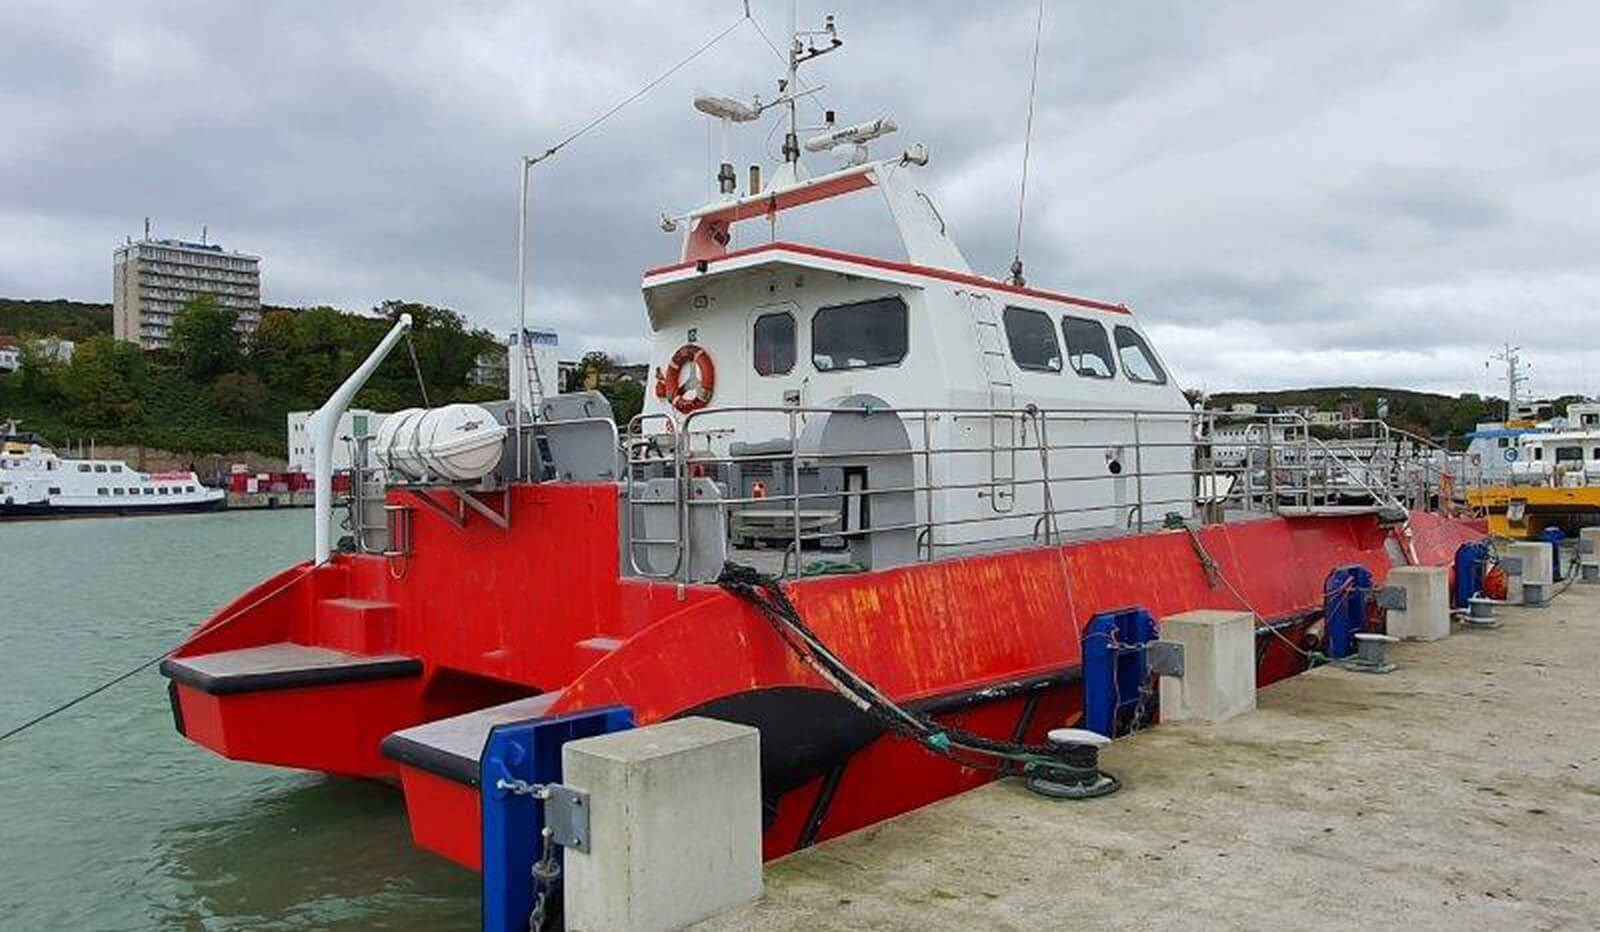 used offshore wind farm vessel for sale 07620 (9)